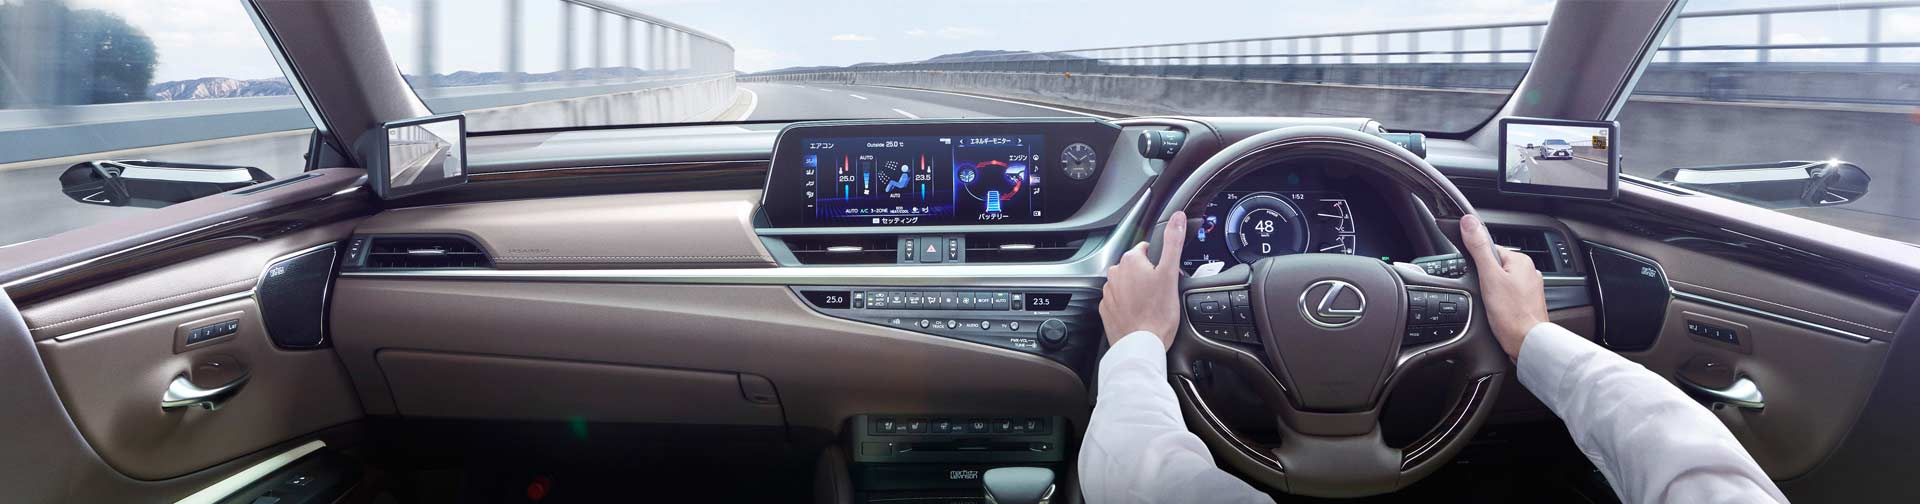 Lexus Digital Side-View Monitor 2019 ES 300h Interior